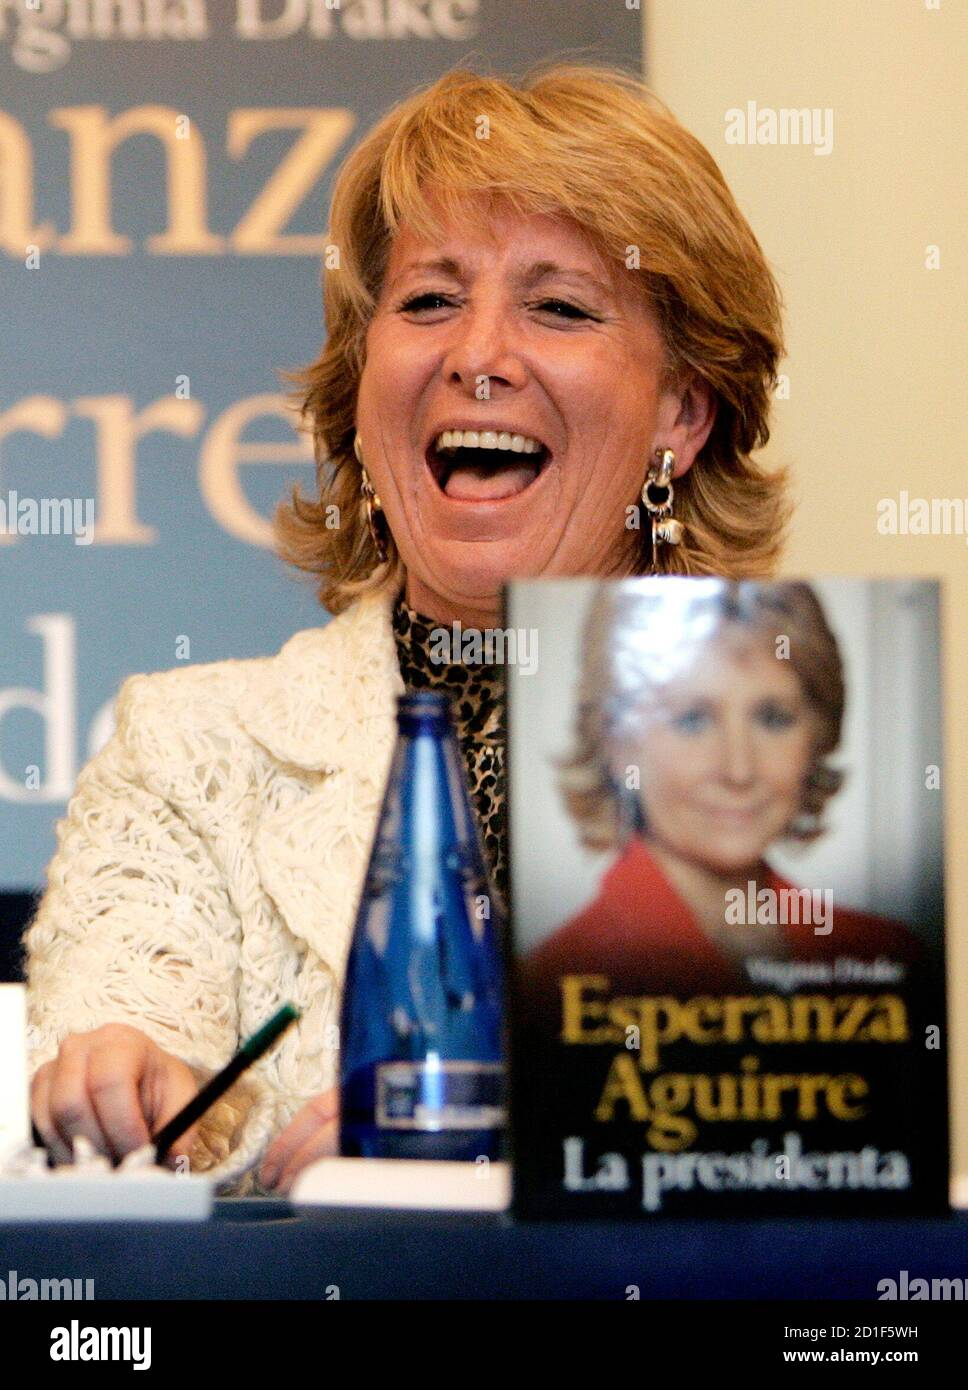 President of Madrid's regional government Esperanza Aguirre laughs during the presentation of her biography 'Esperanza Aguirre La Presidenta' in Madrid November 28, 2006.  REUTERS/Andrea Comas  (SPAIN) Banque D'Images